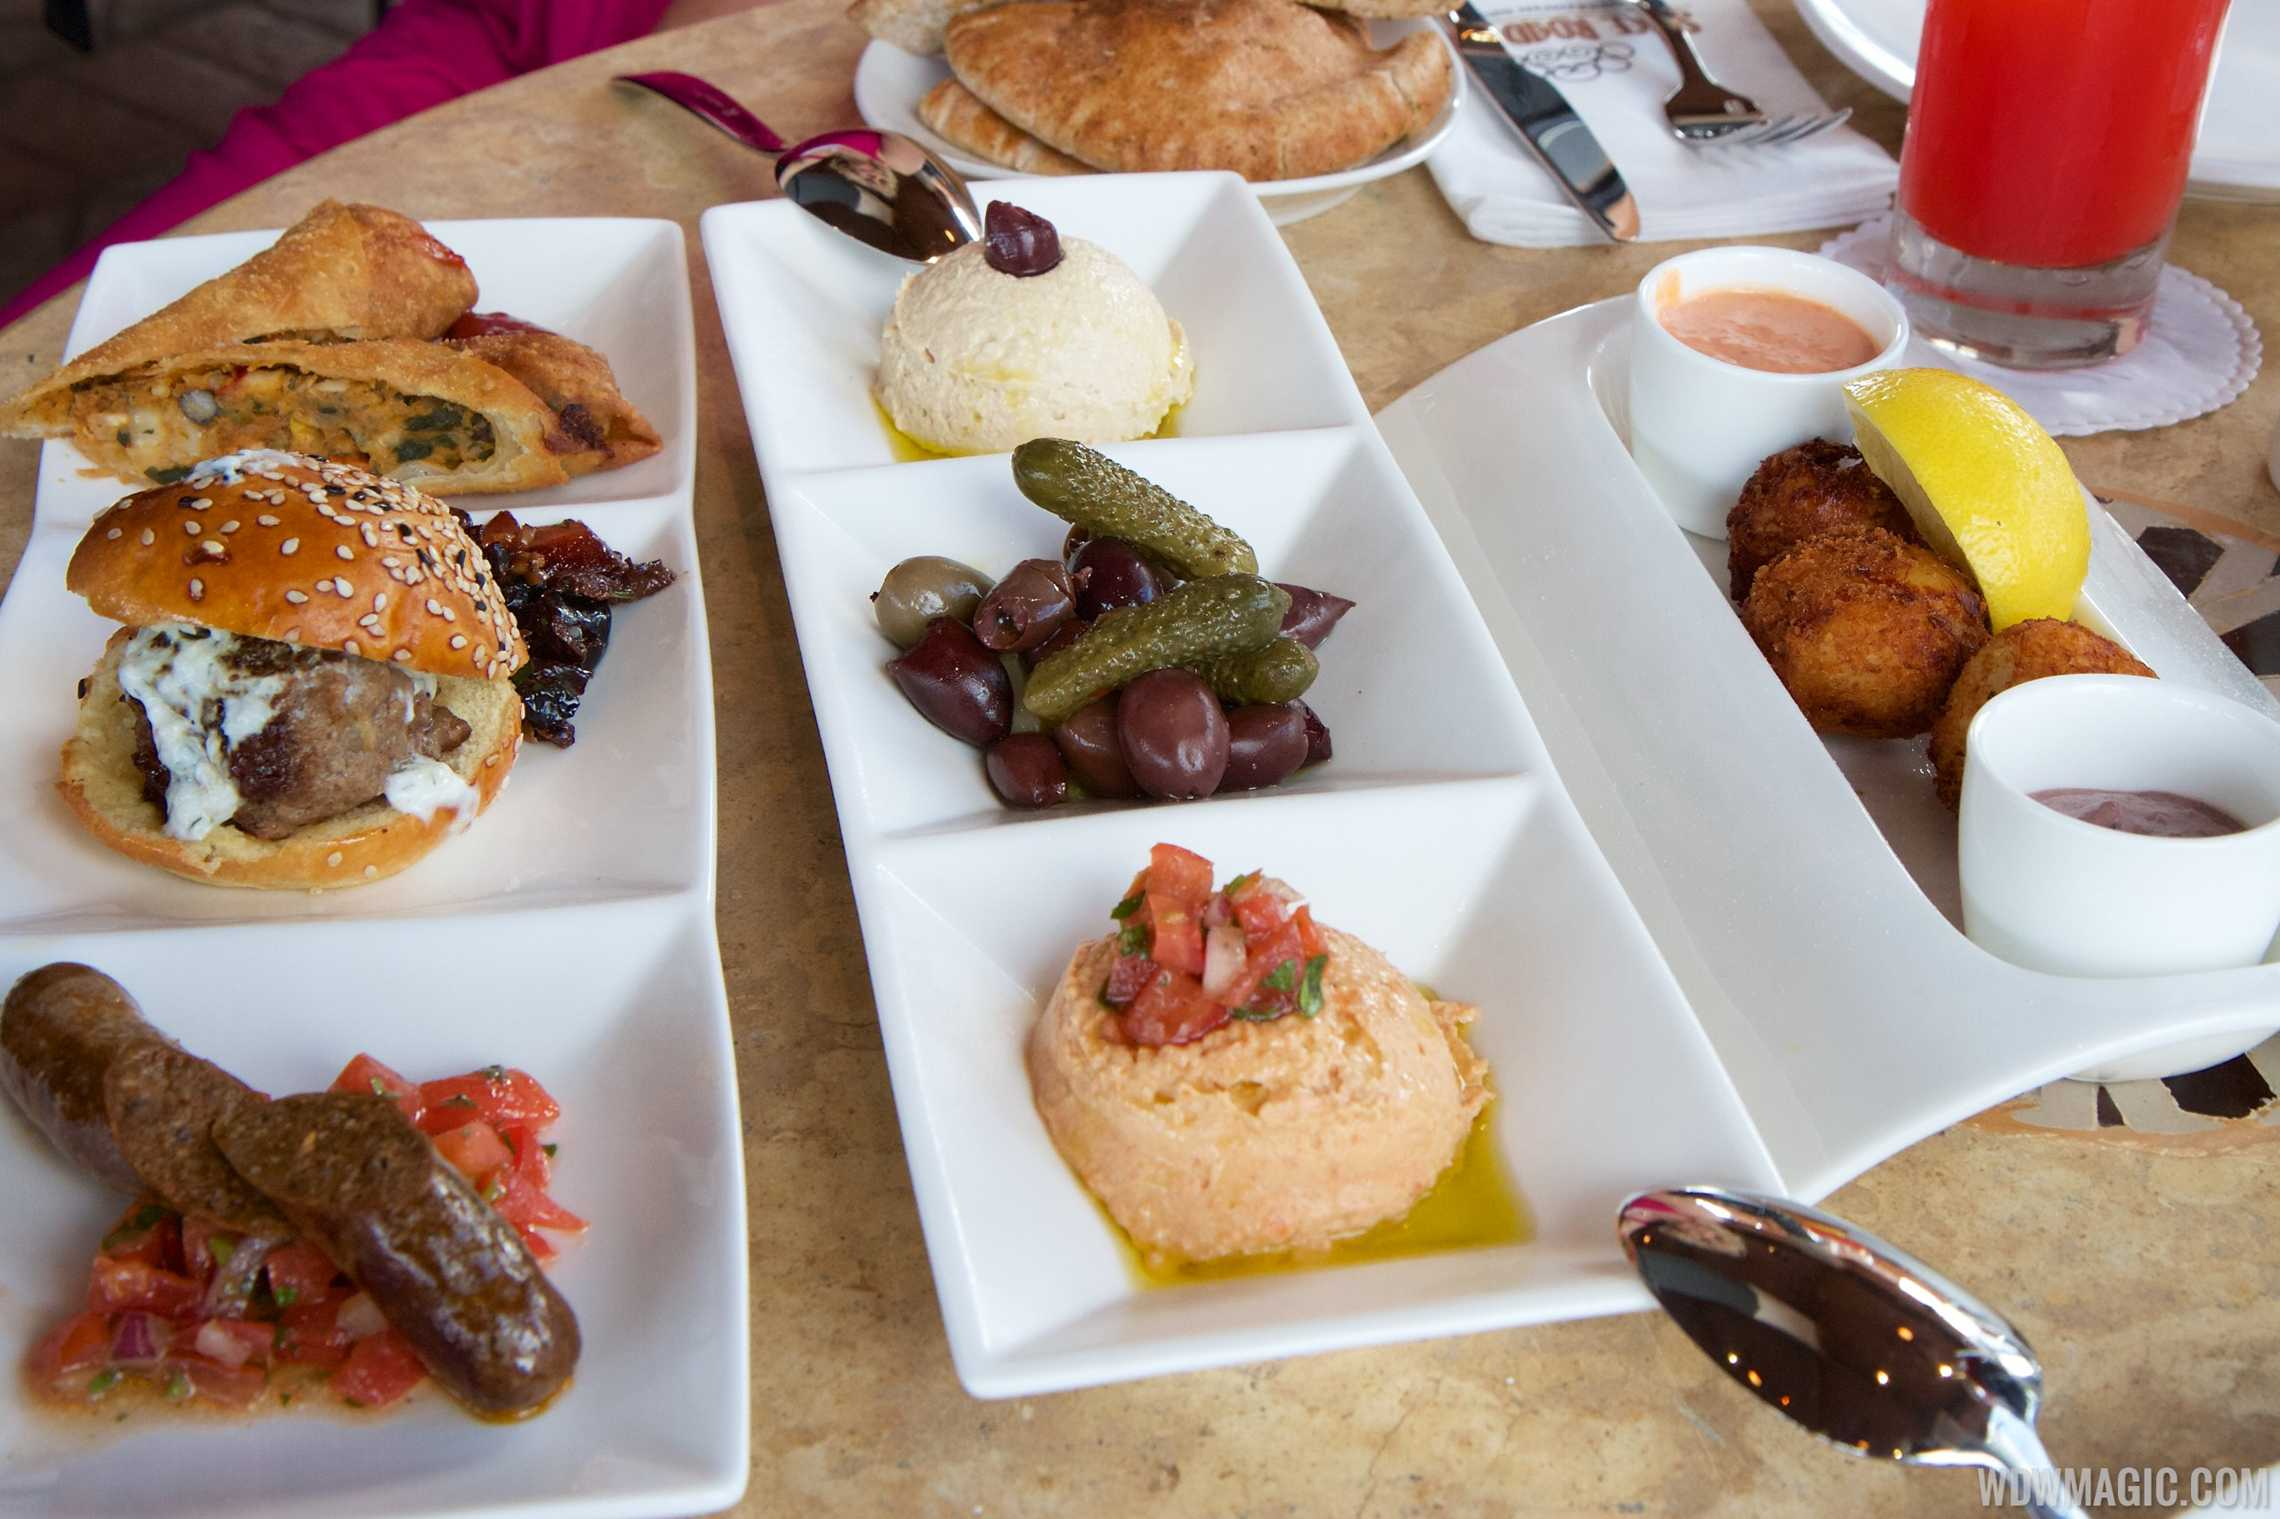 Spice Road Table - Tingis Sampler $16, Hummus and Olives $10, Salted Cod Croquettes $10